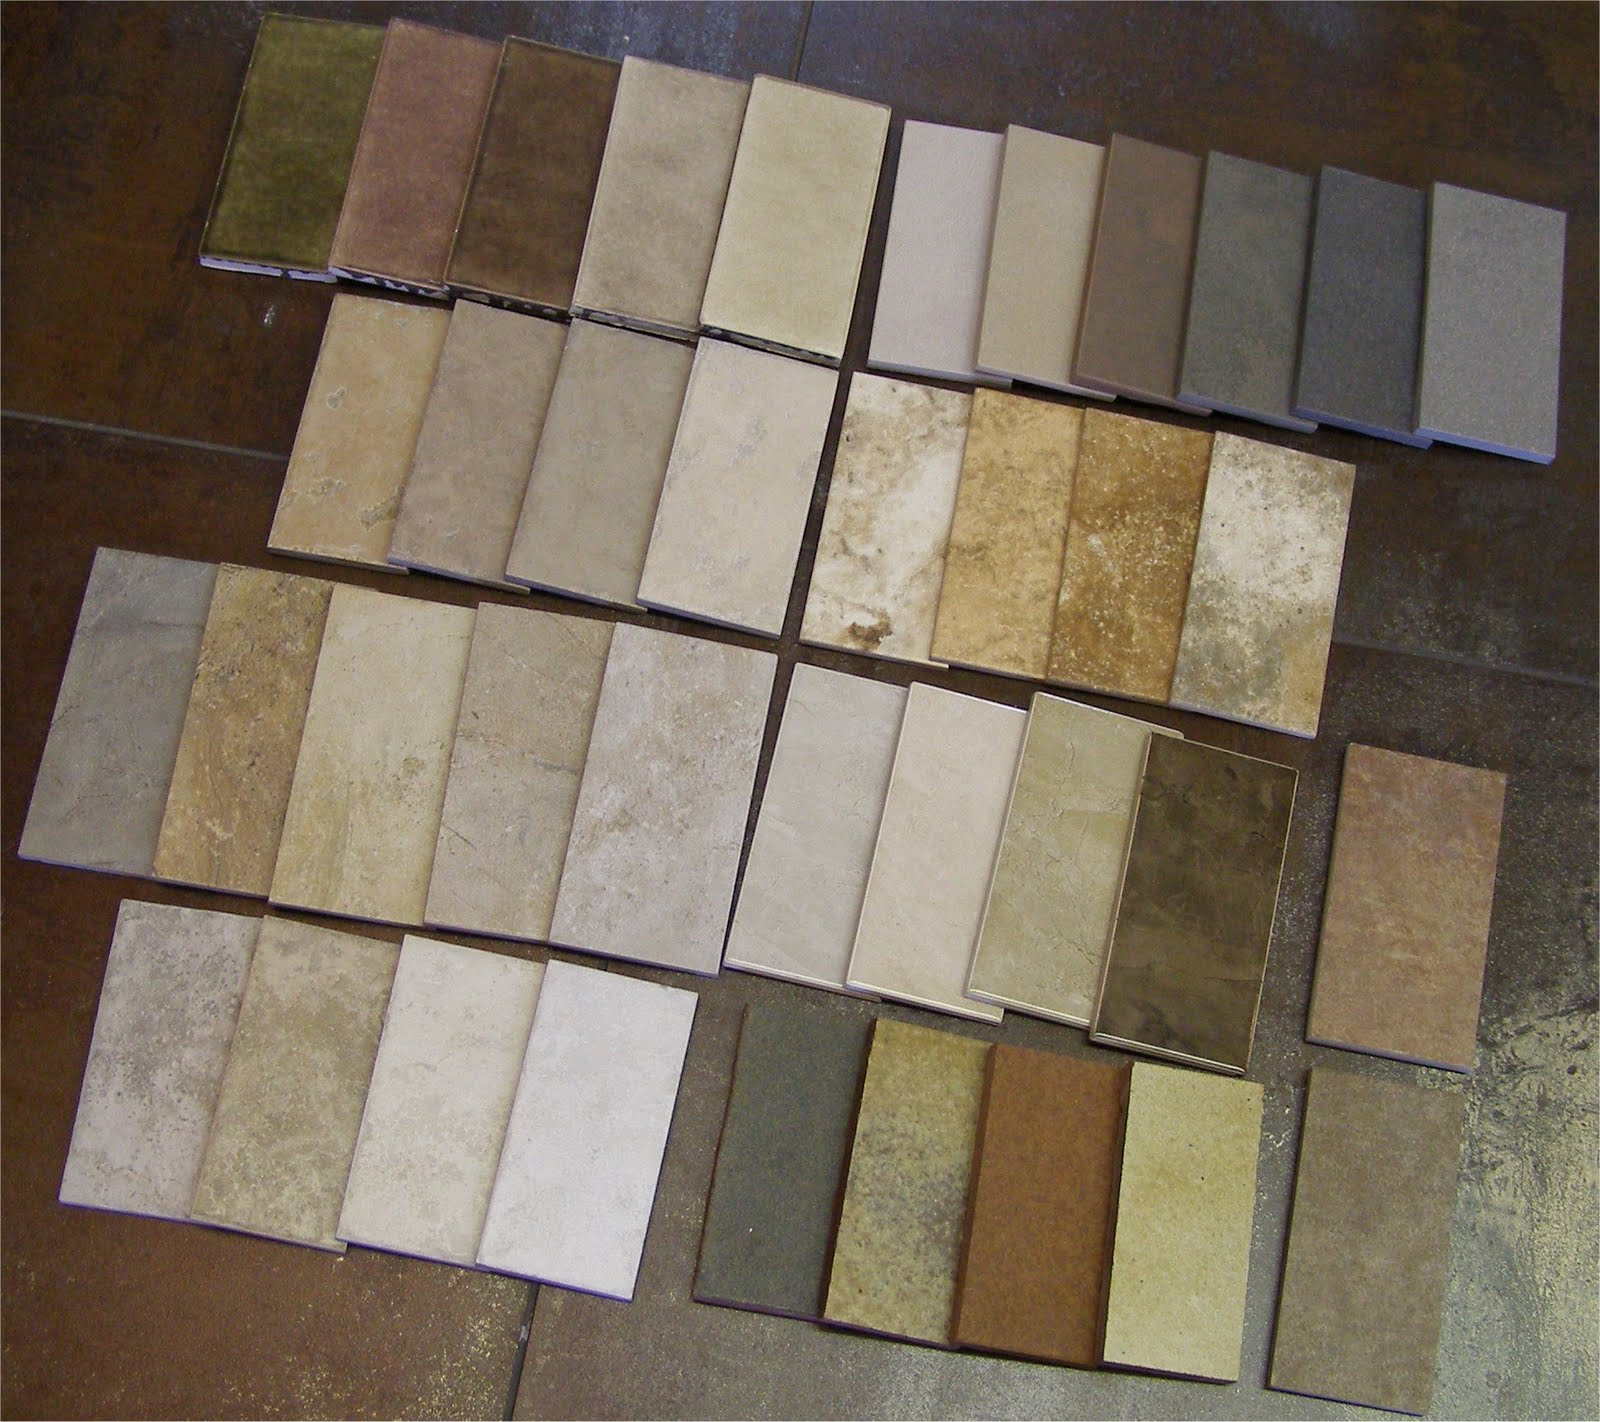 Miles of Tile: Subway Tile | H.Winter Showroom Blog